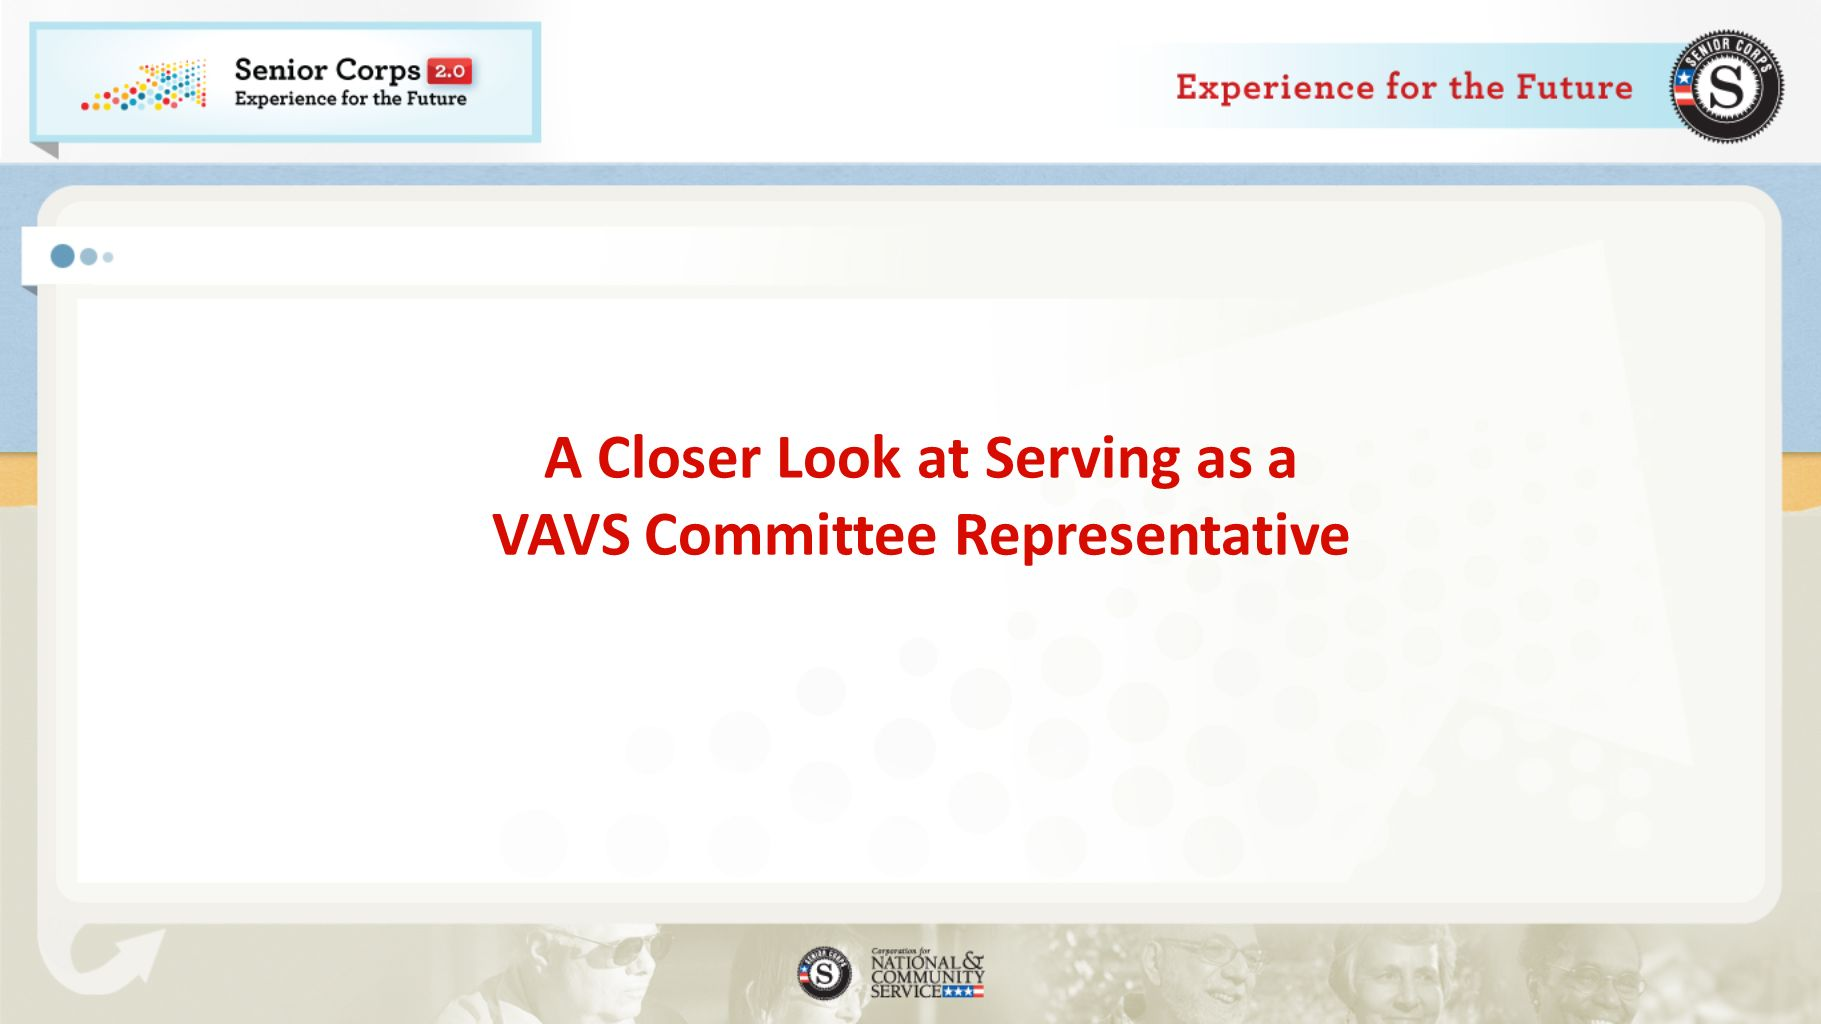 A Closer Look at Serving as a VAVS Committee Representative